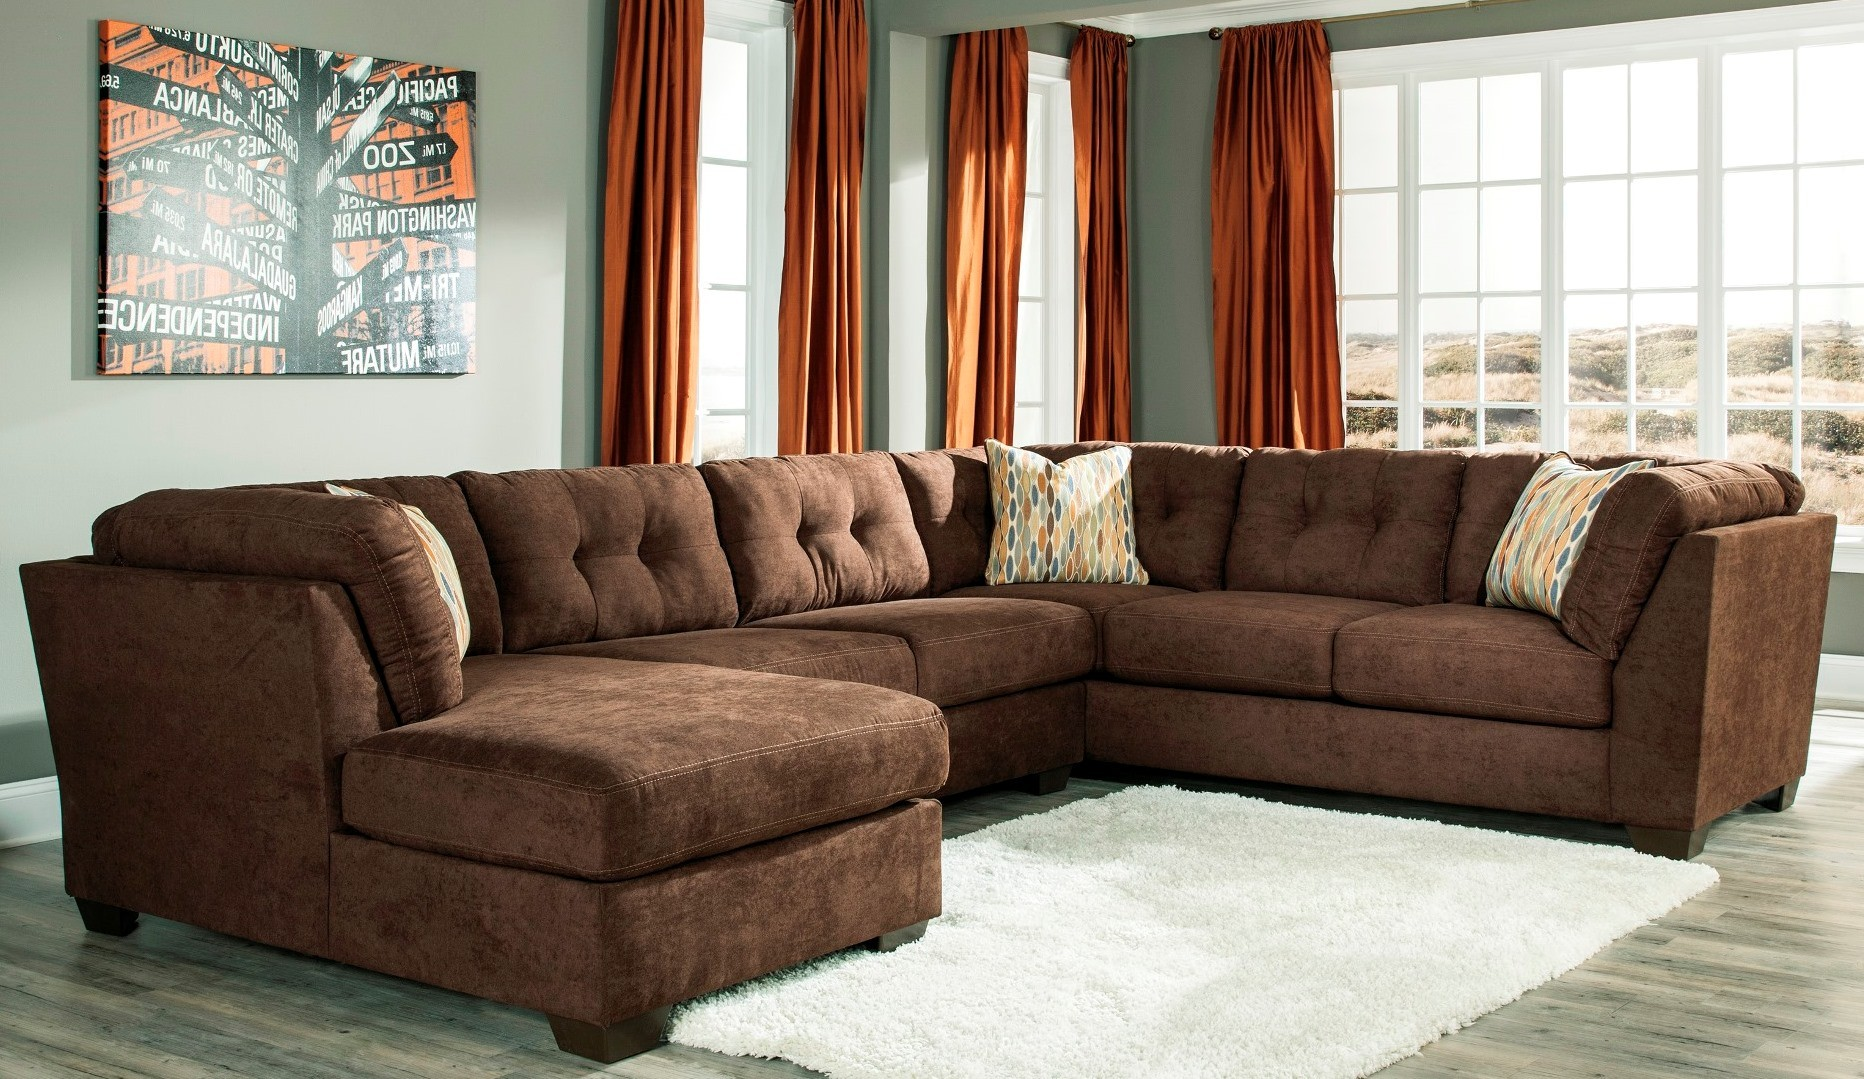 Delta City Chocolate Laf Sectional From Ashley 19702 16 34 38 Coleman Furniture